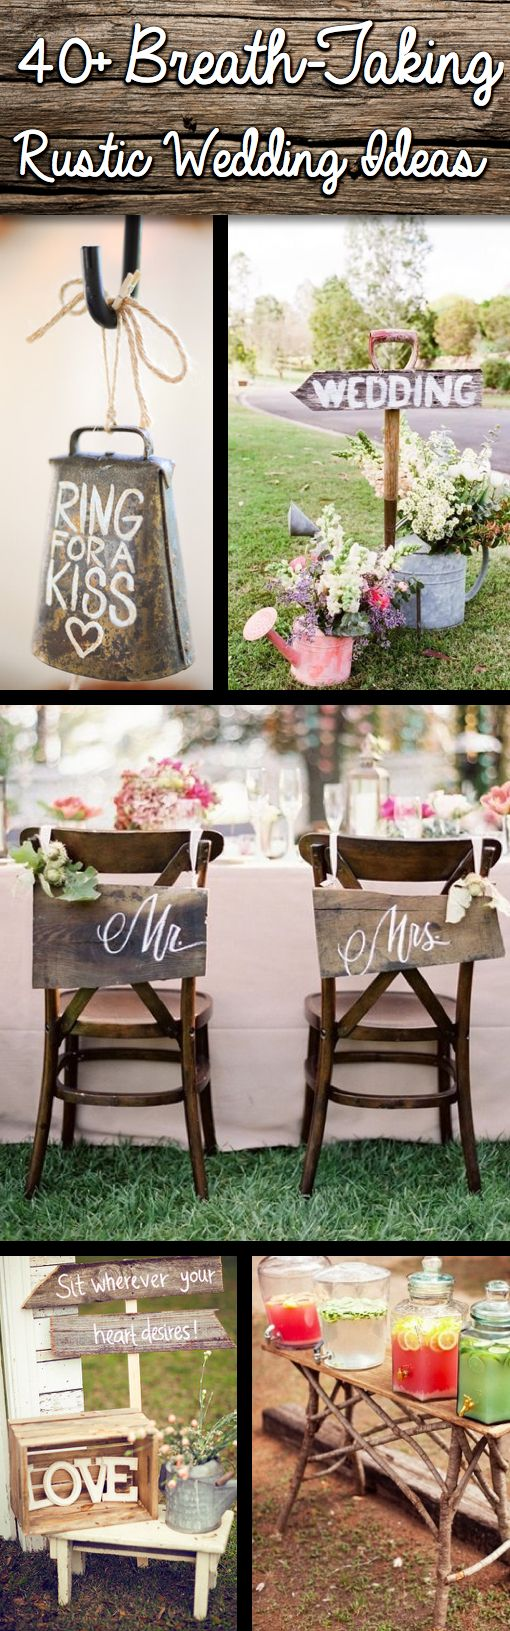 Shine+On+Your+Wedding+Day+With+These+Breath-Taking+Rustic+Wedding+Ideas!